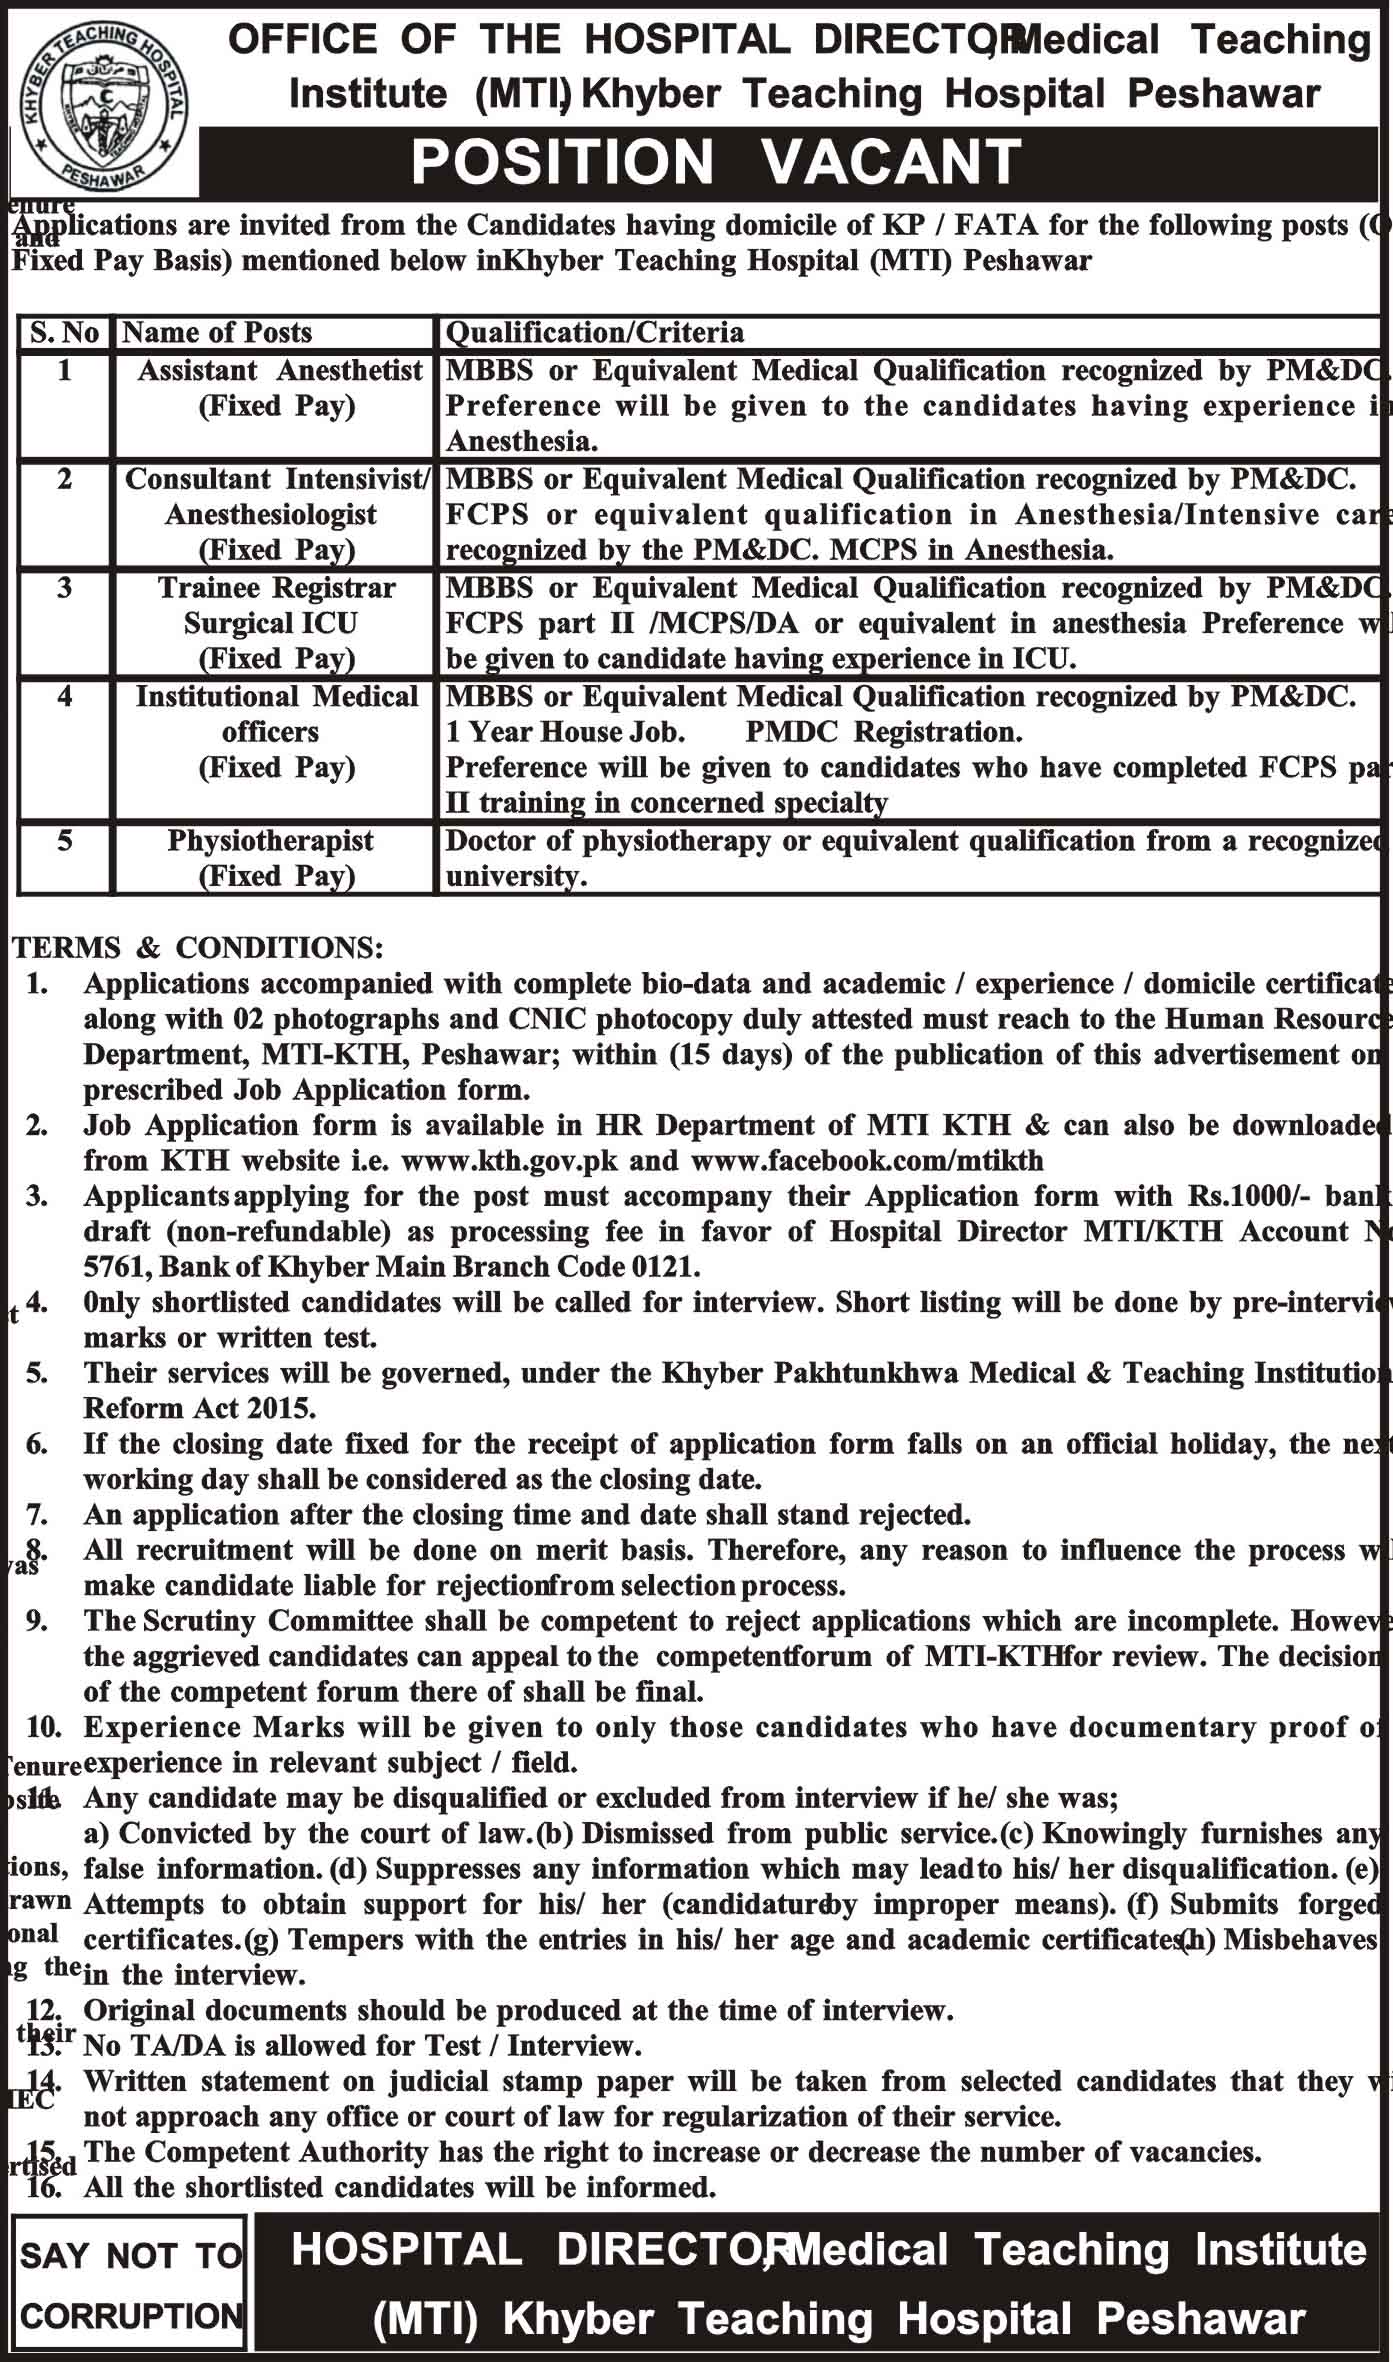 Khyber Teaching Hospital Peshawar New Jobs, 21st February 2018, Daily Mashriq Newspaper